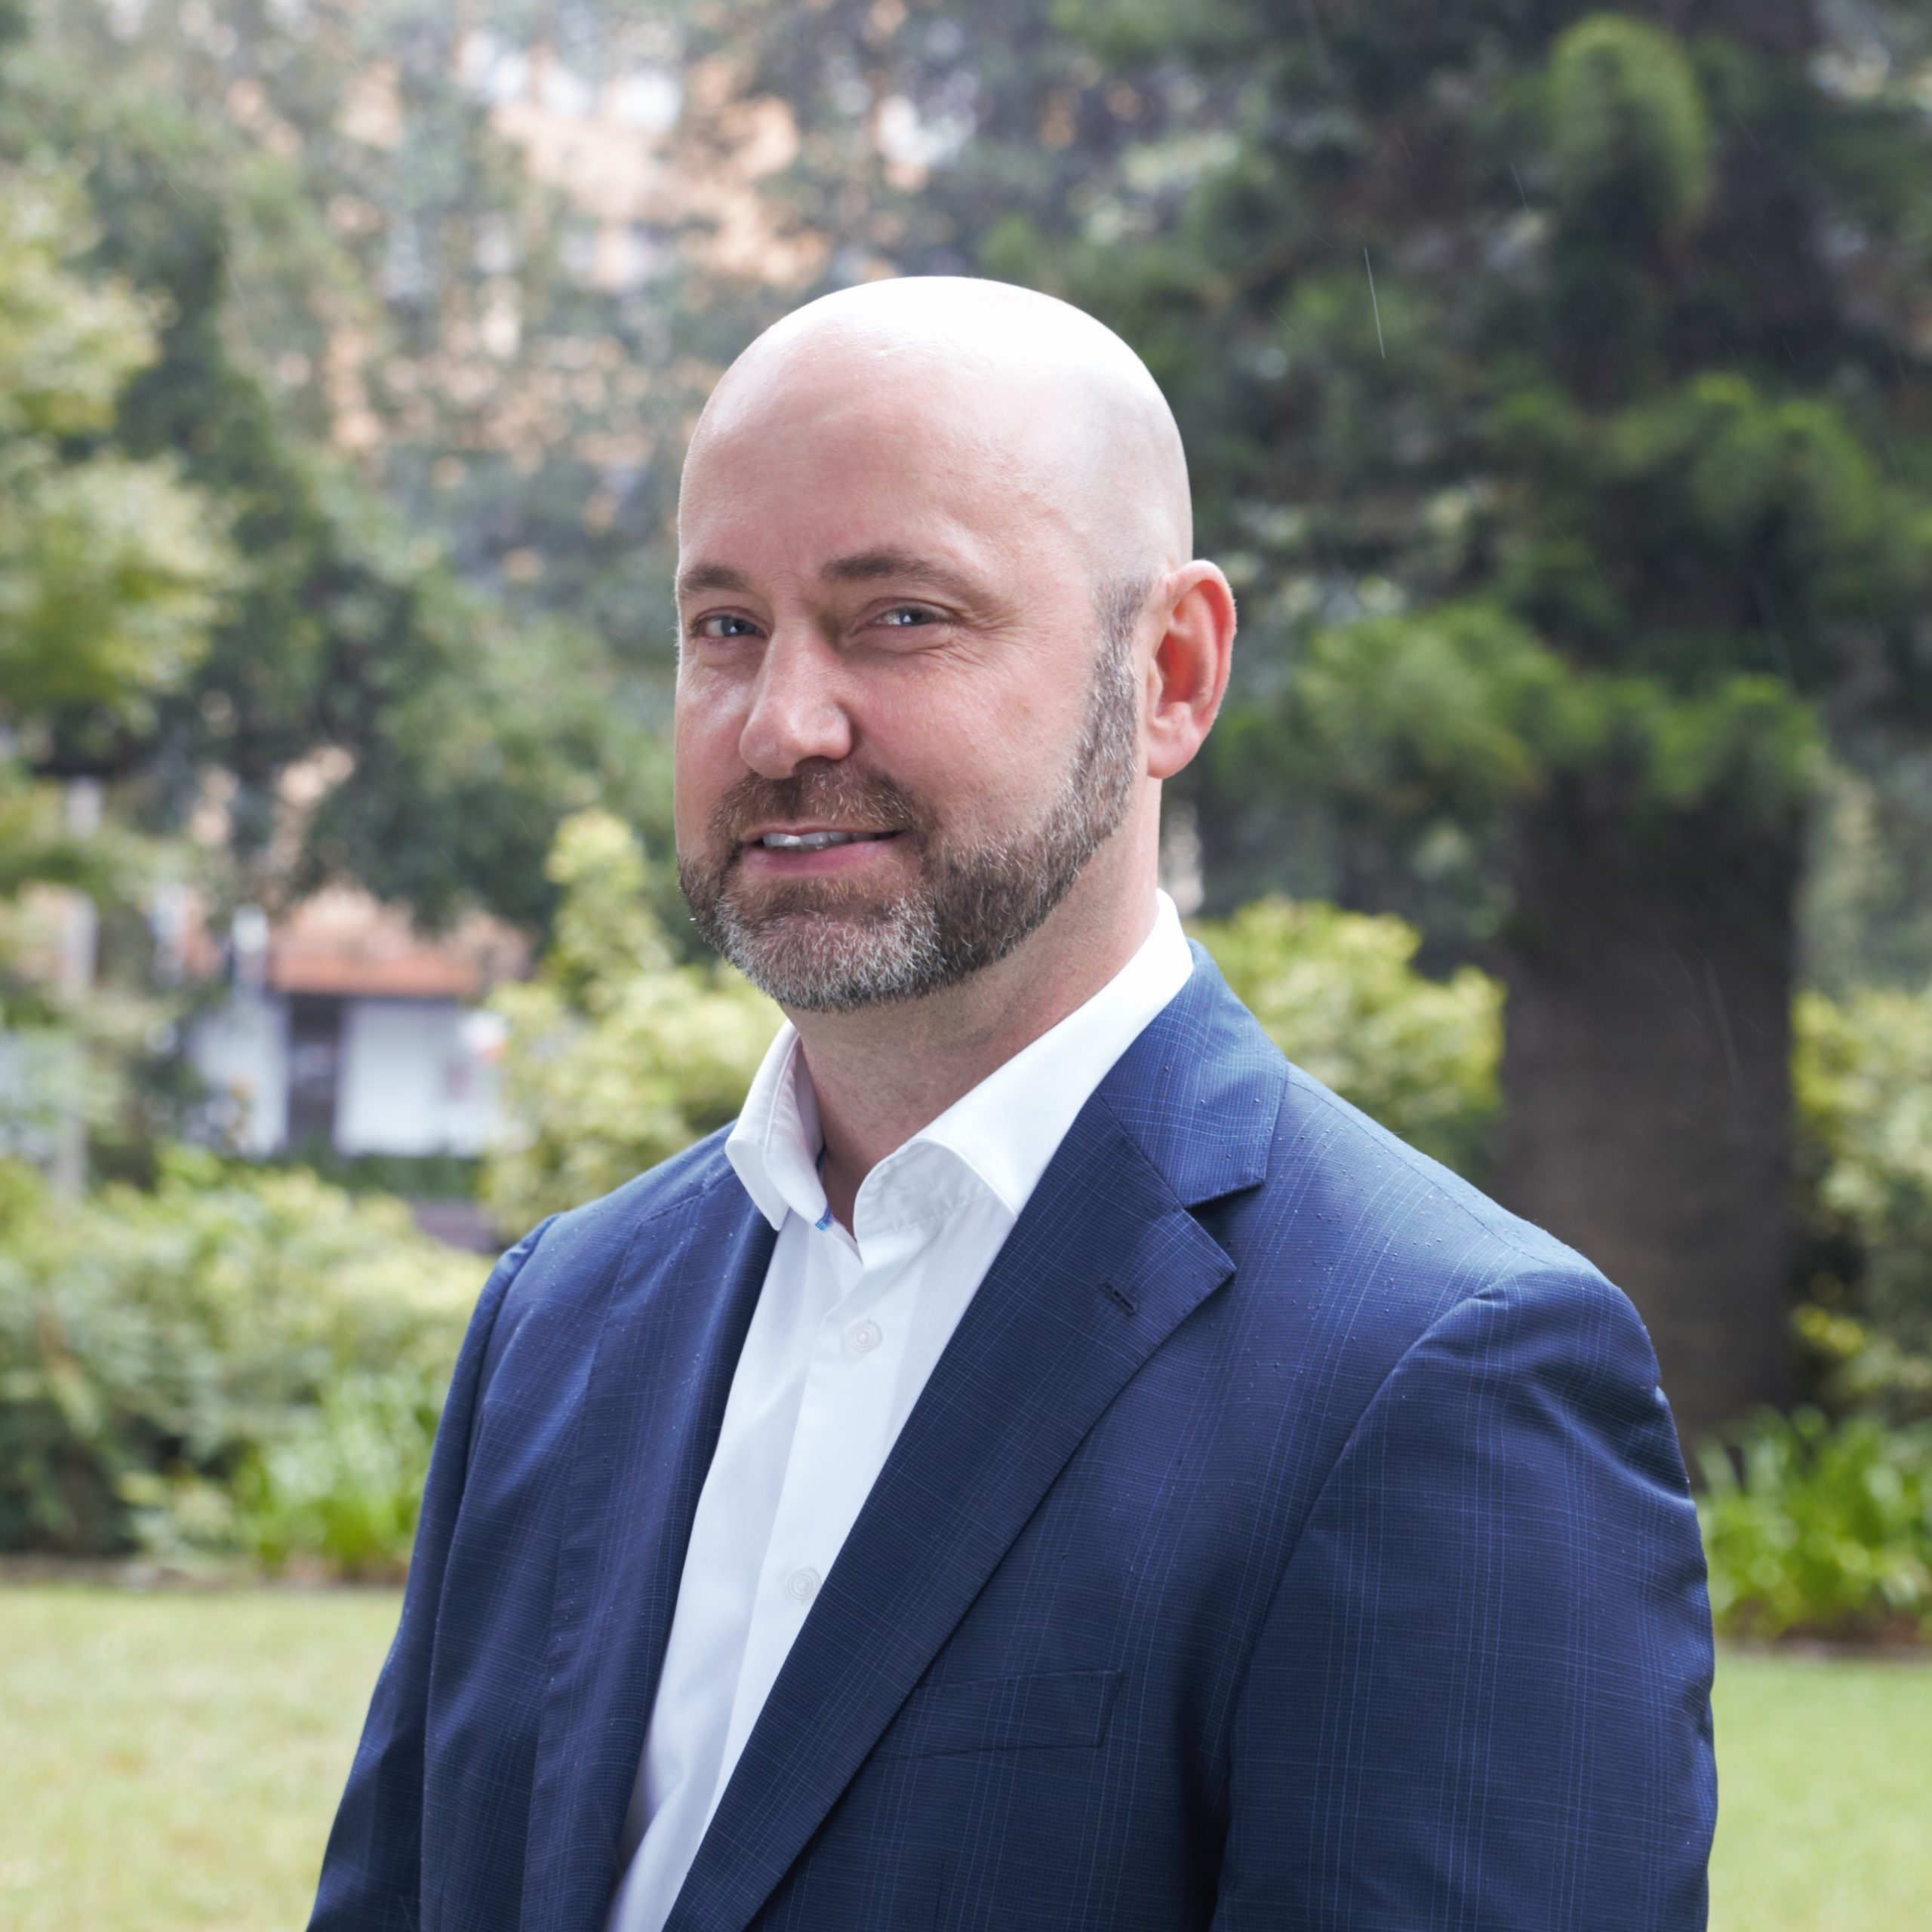 Australian based financial advice technology provider Midwinter Financial Services appoints new CEO